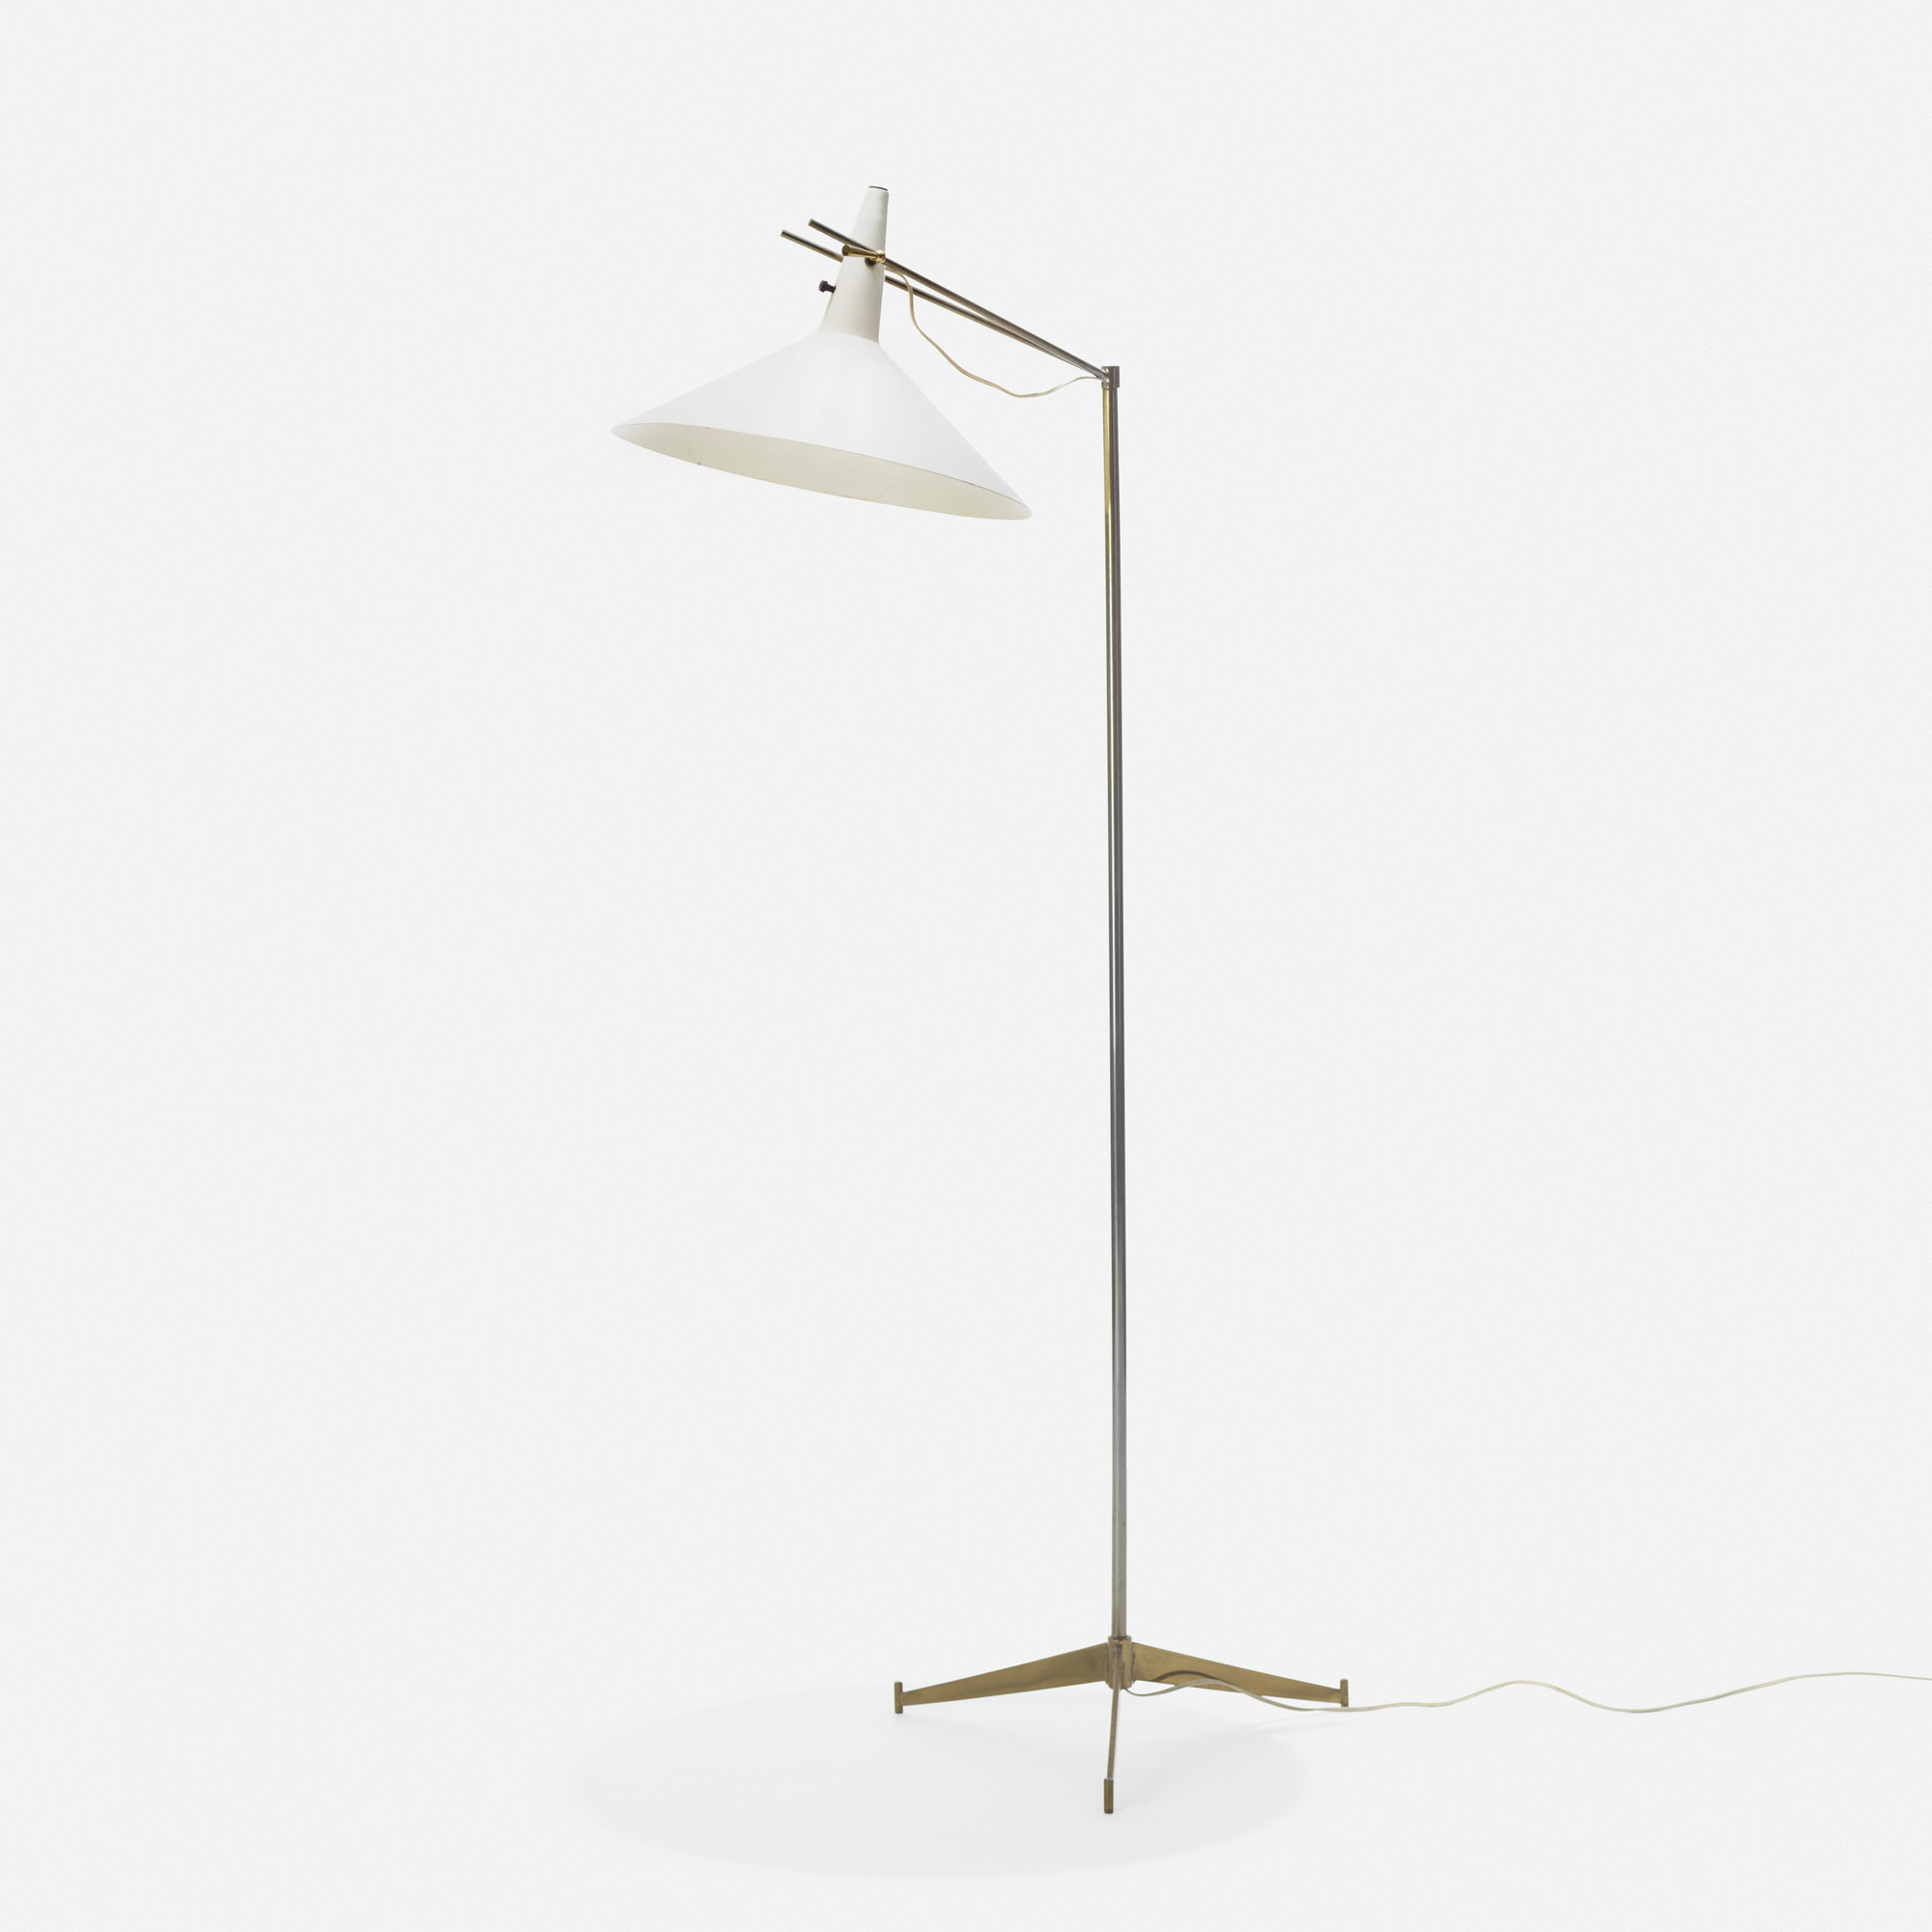 117: Paul McCobb / floor lamp (1 of 2)